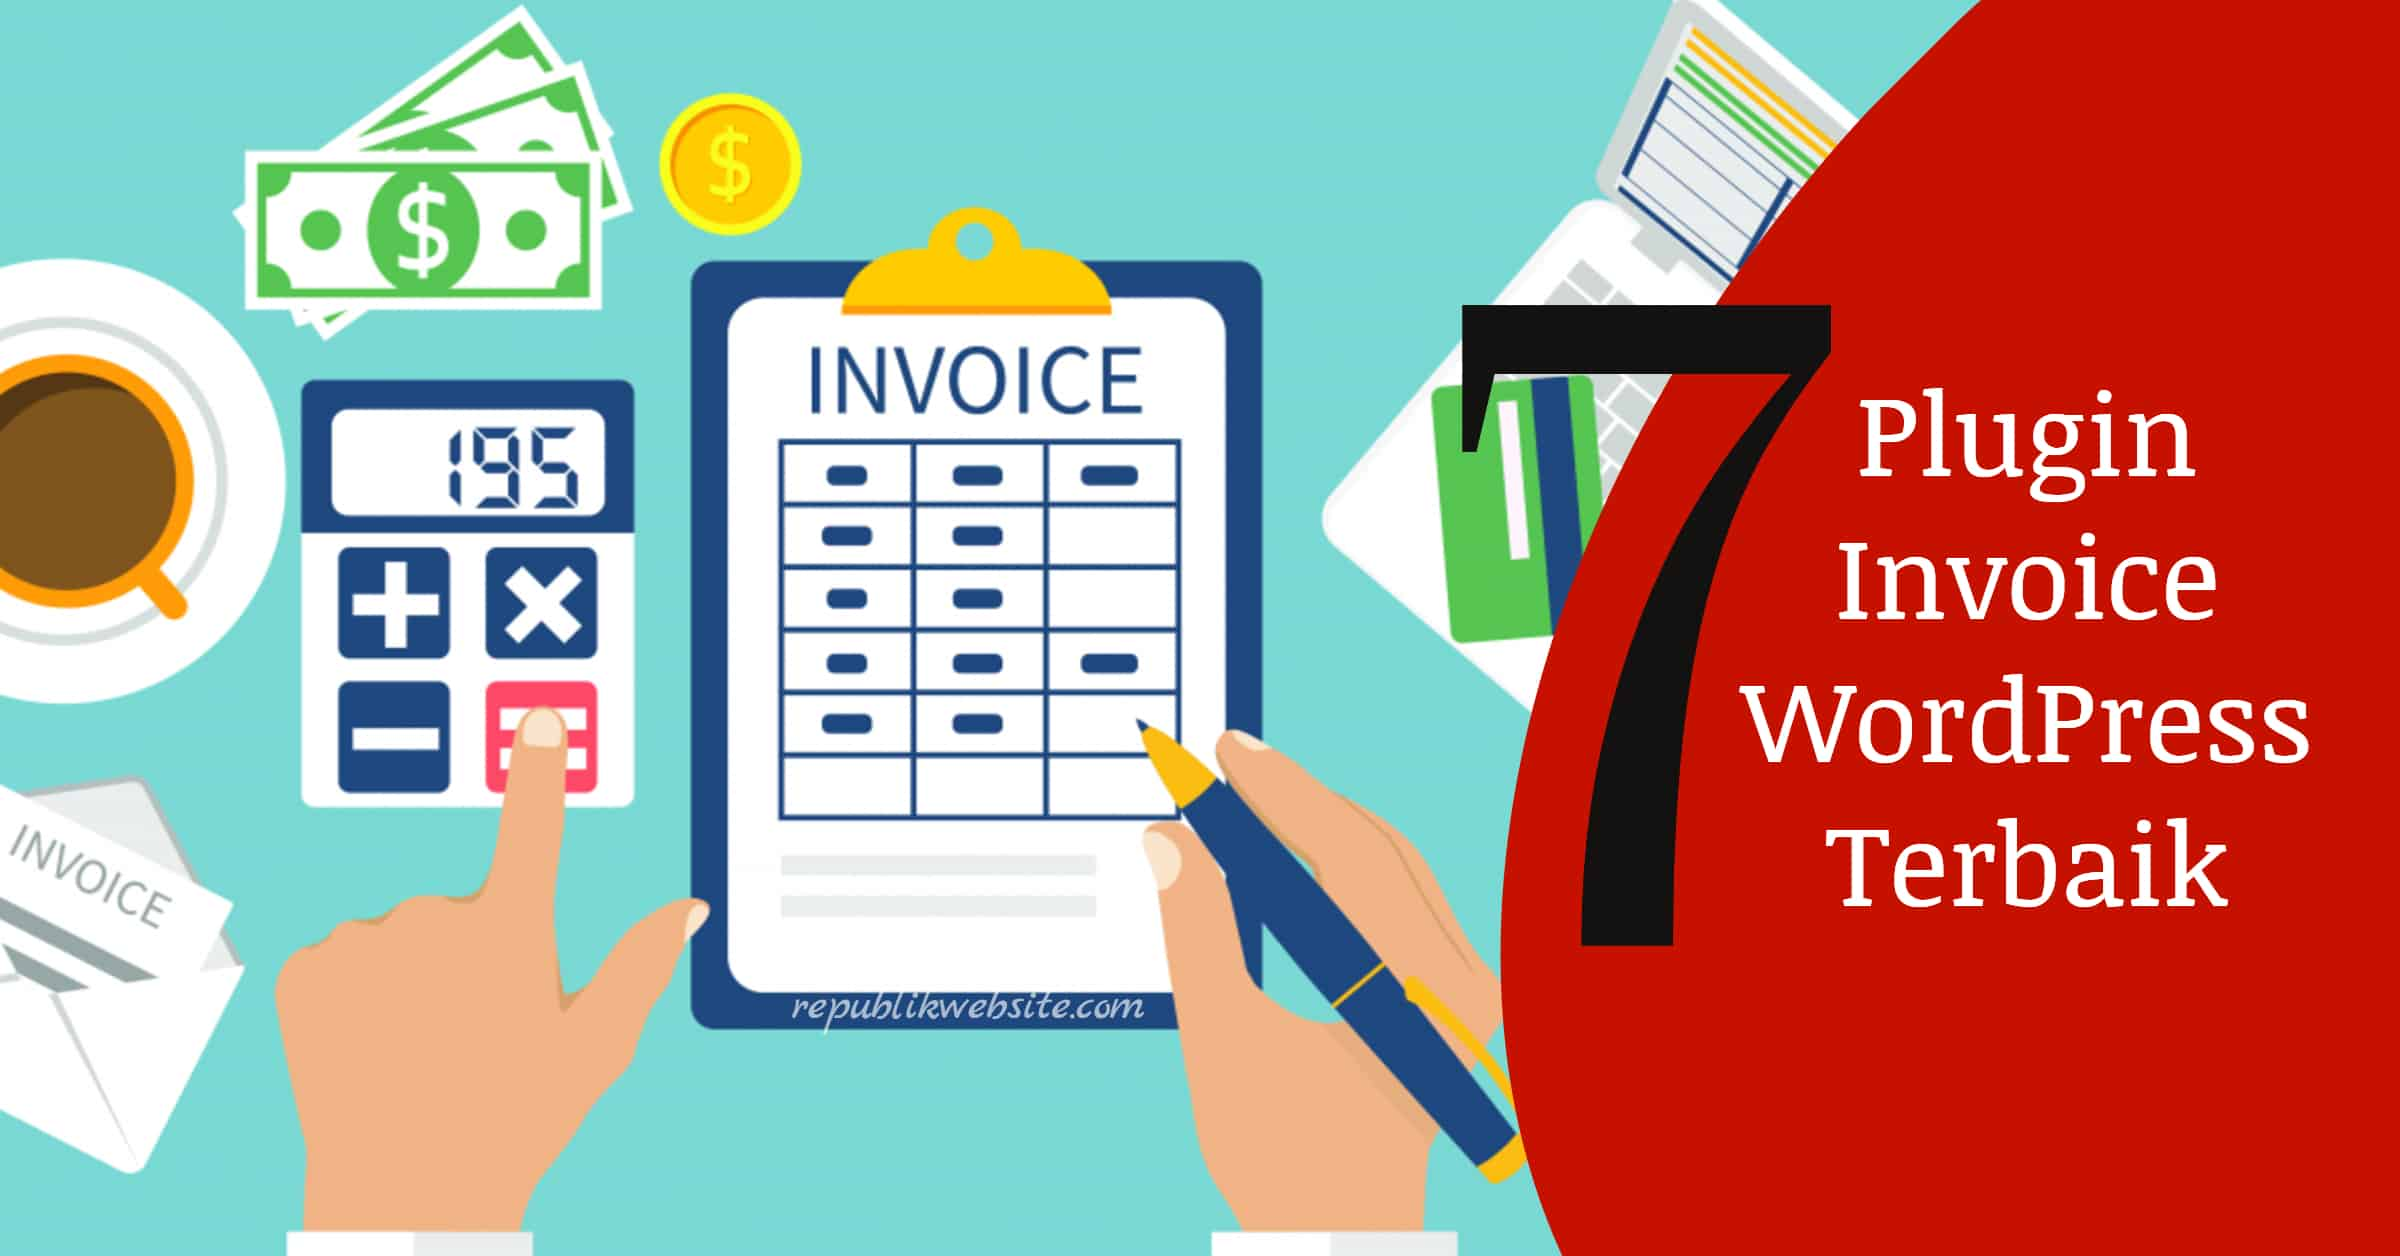 Plugin Invoice WordPress Terbaik